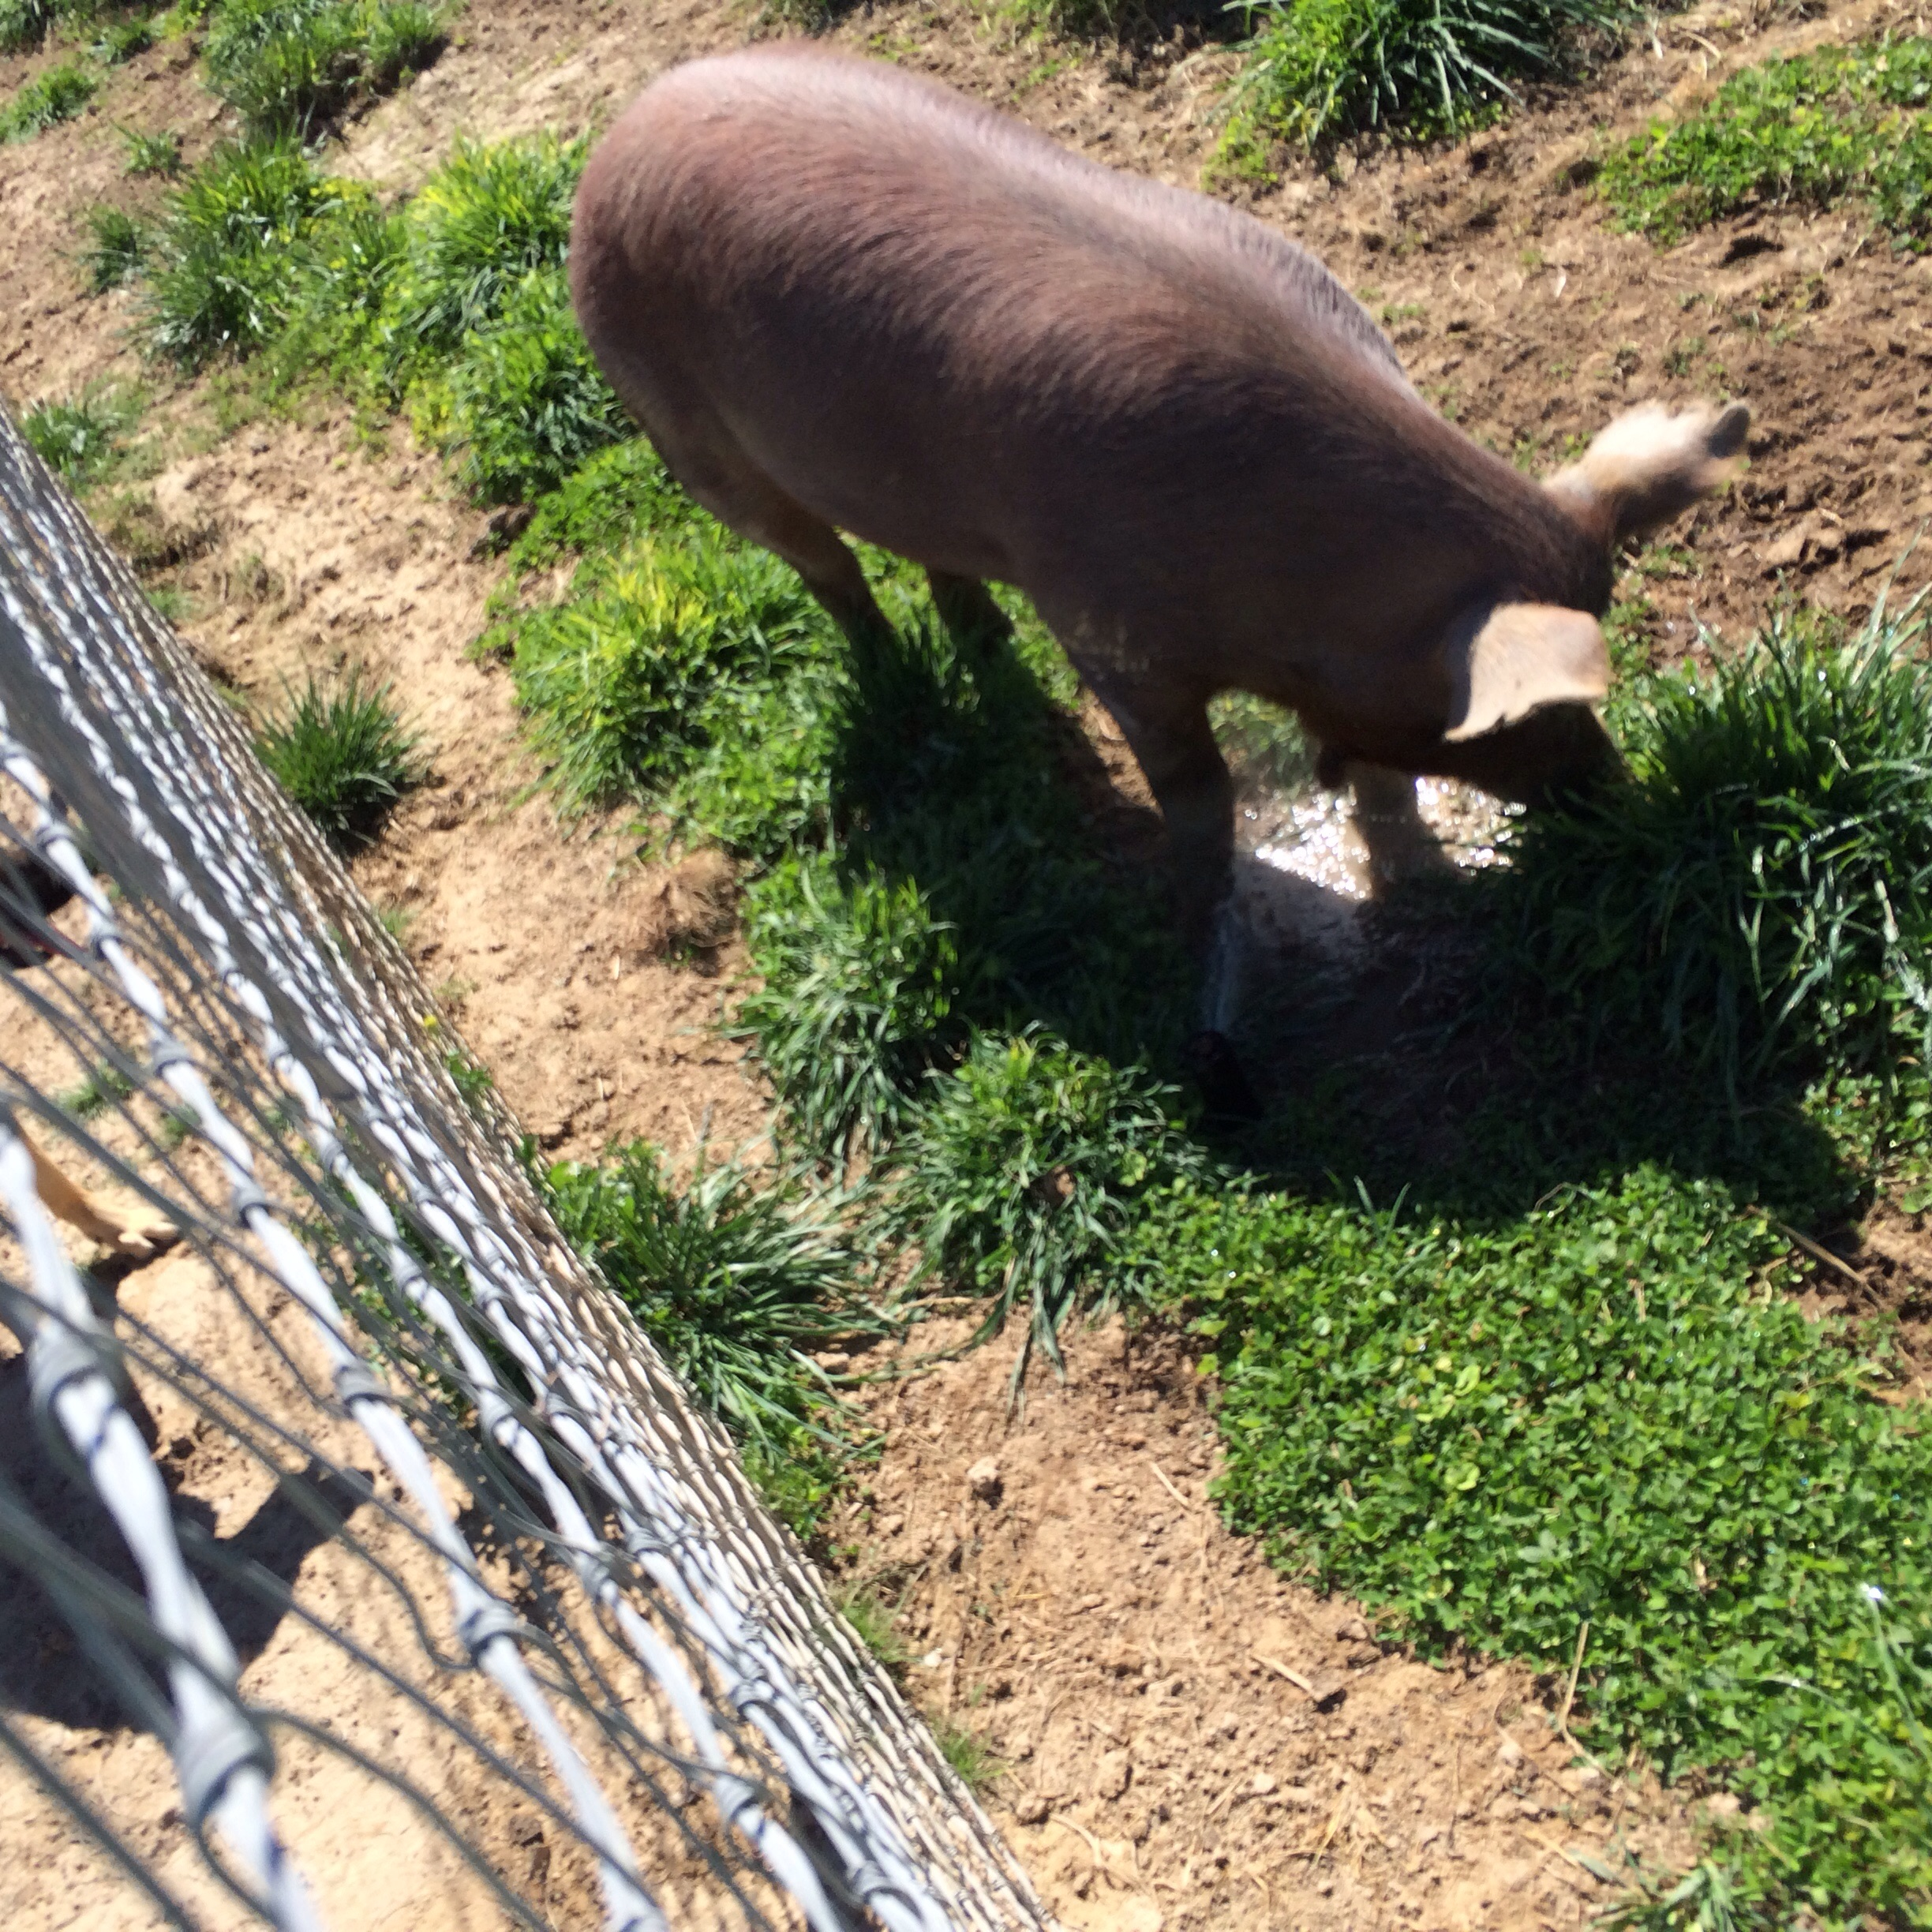 The pigs love to play with the sprinklers and they break them often